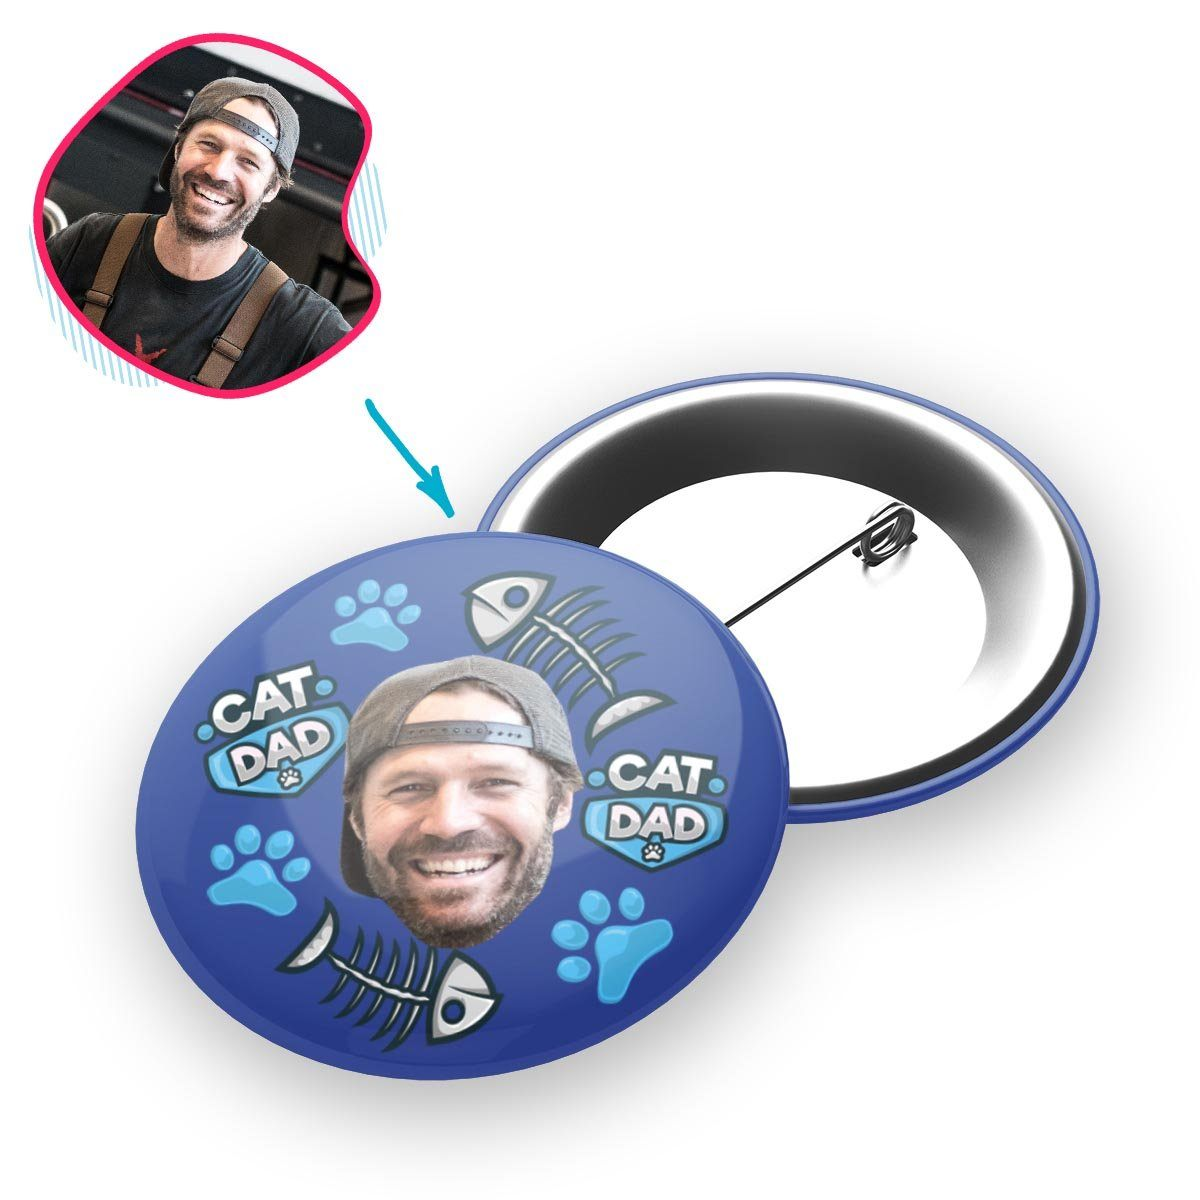 Cat Dad Personalized Pin Button